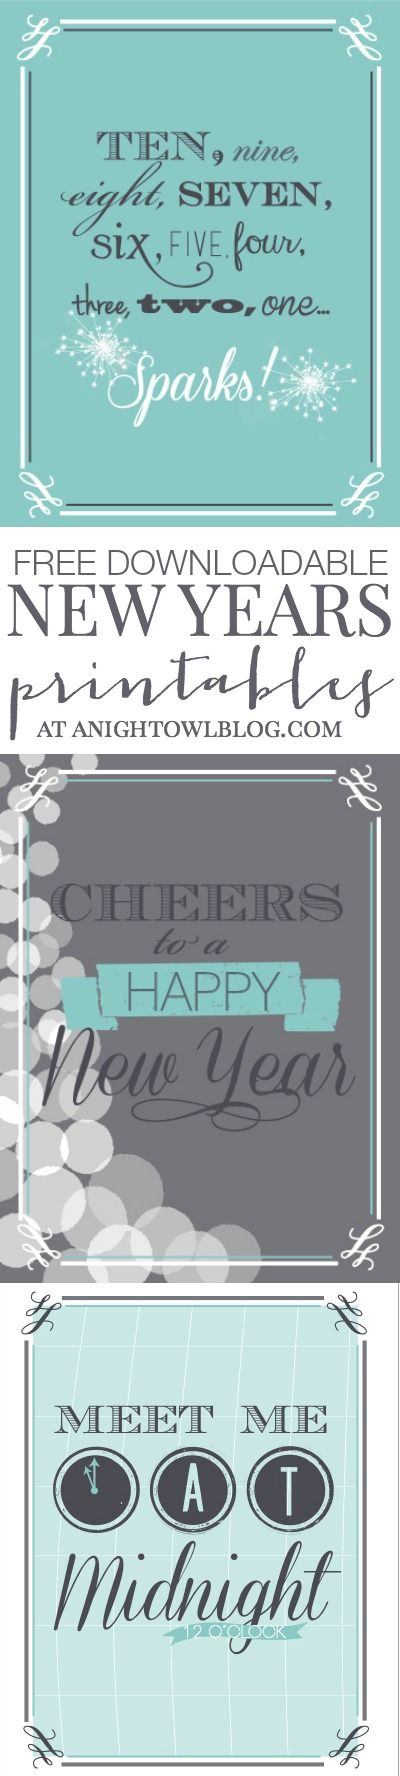 FREE Downloadable New Years Eve Printables at anightowlblog.com!